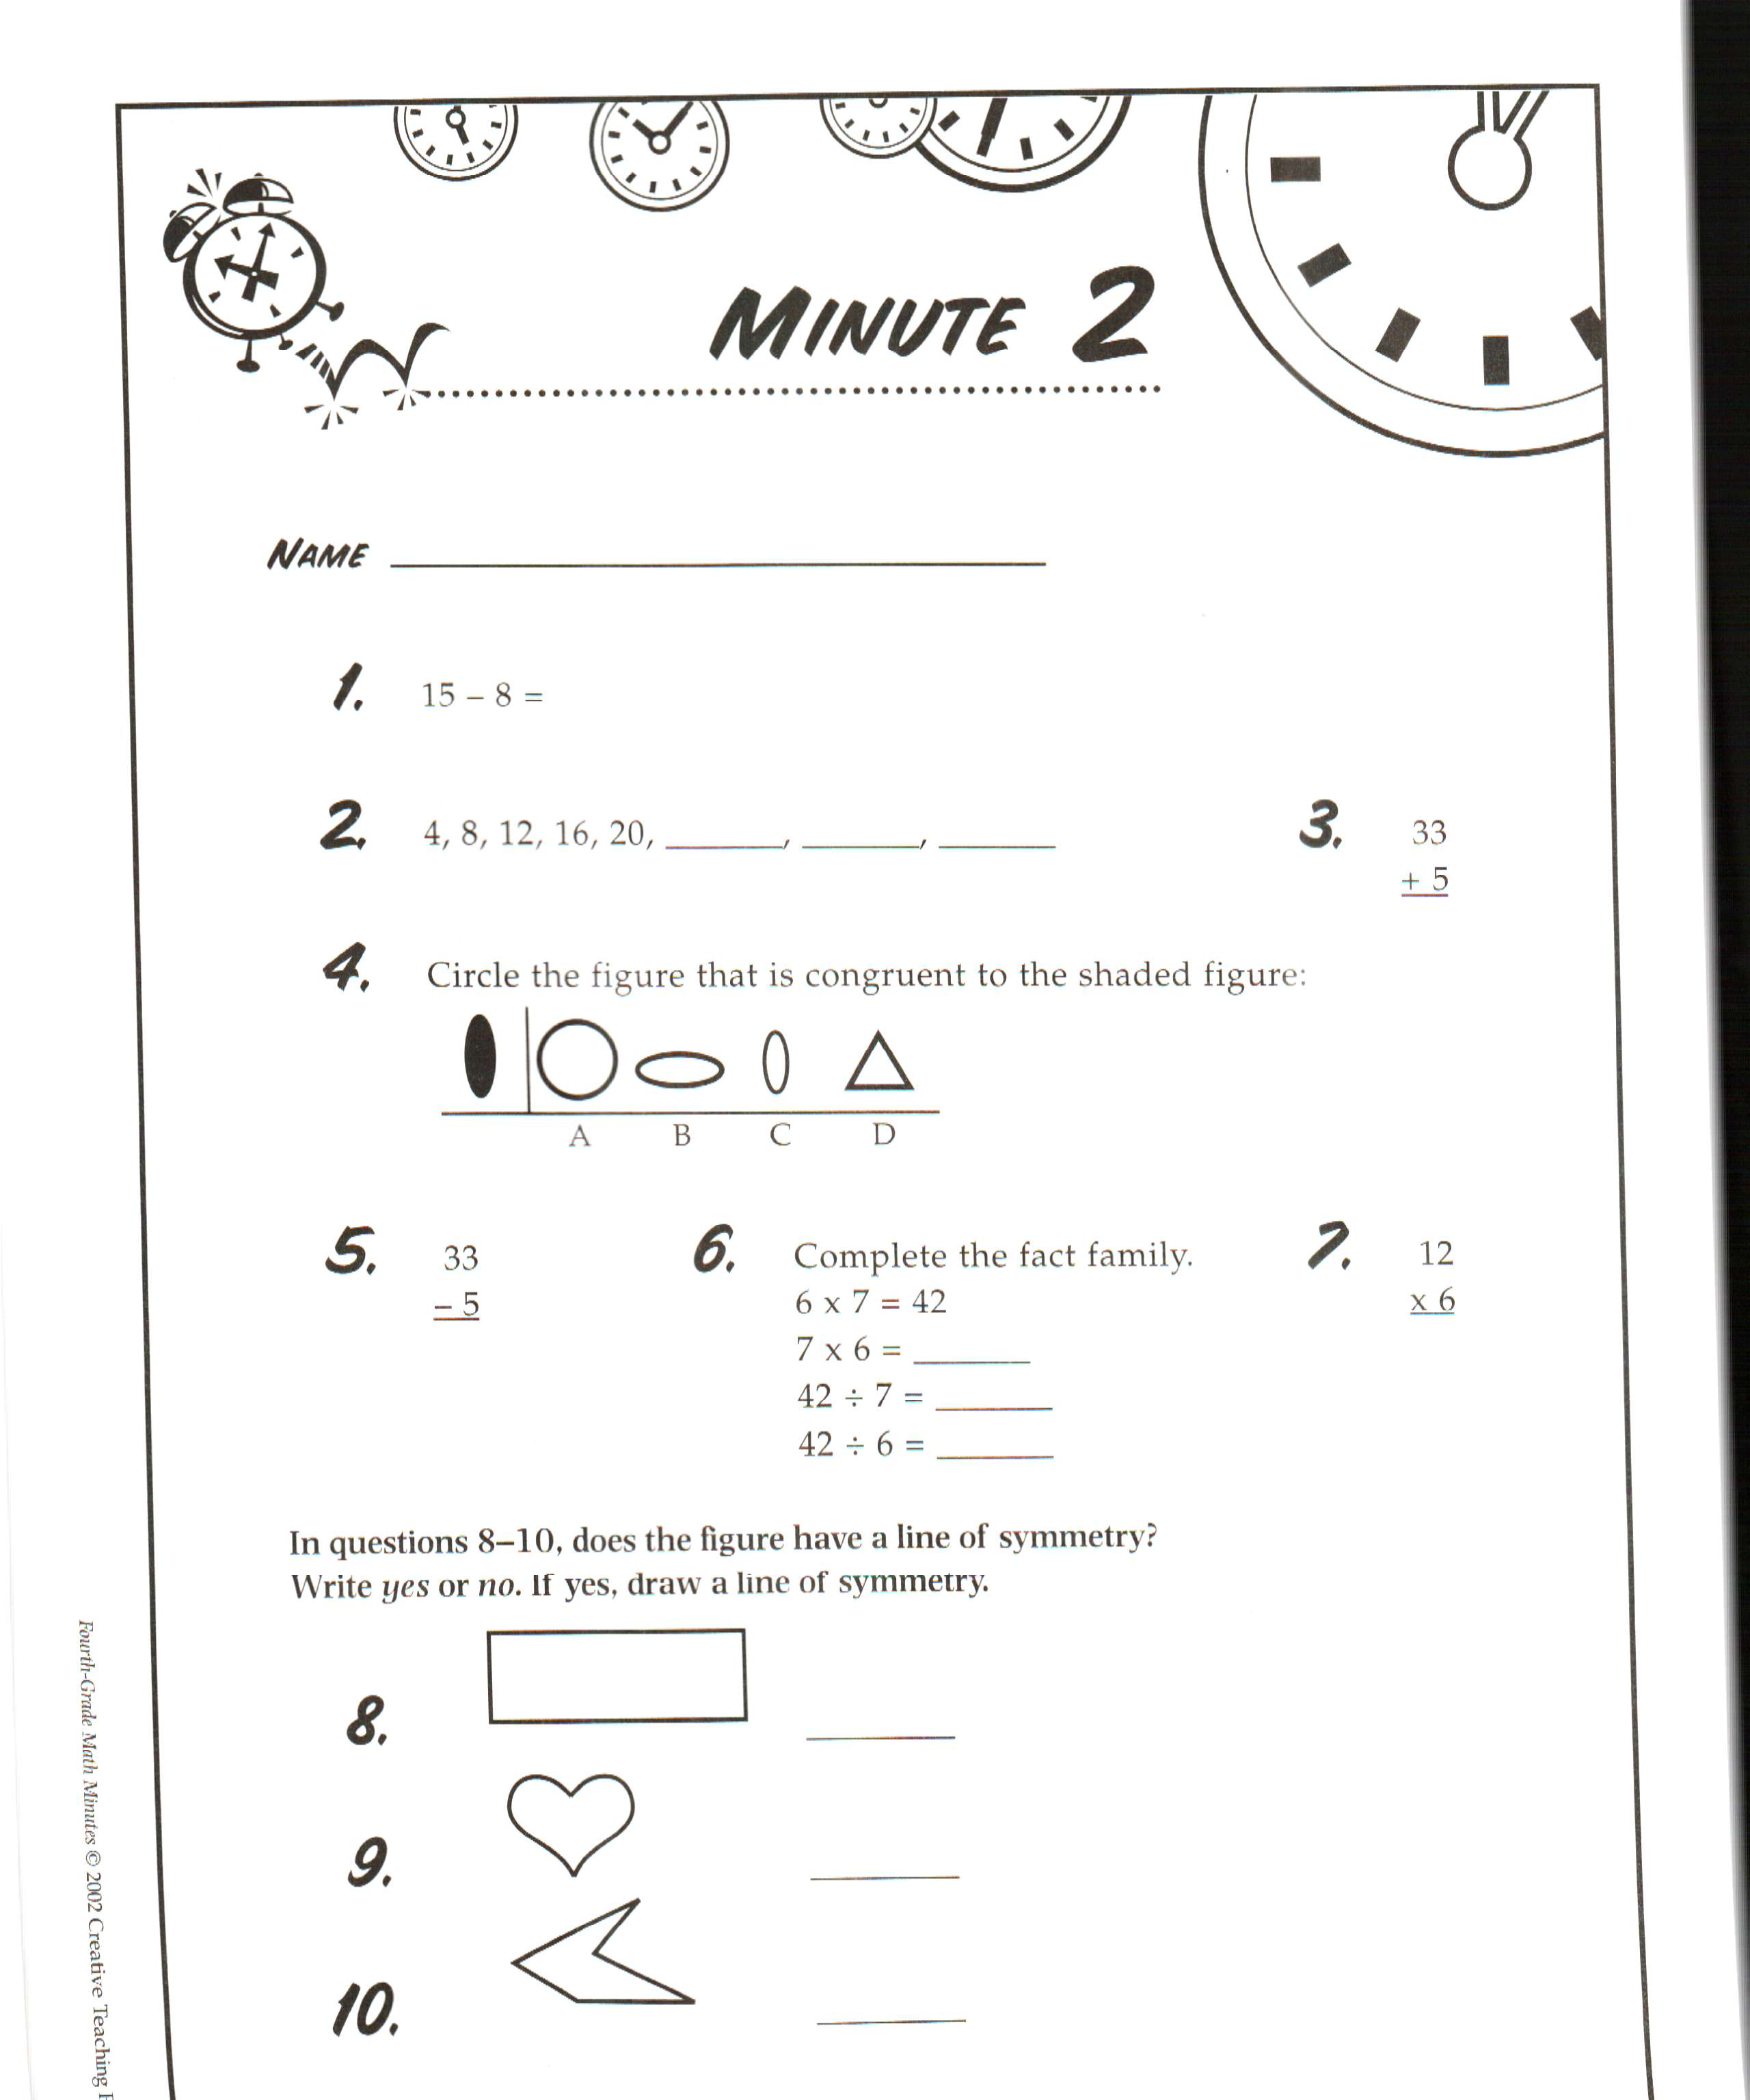 Printables Math Minute Worksheet printables math minute worksheet safarmediapps worksheets 3rd grade daily minutes mrs faoro download file